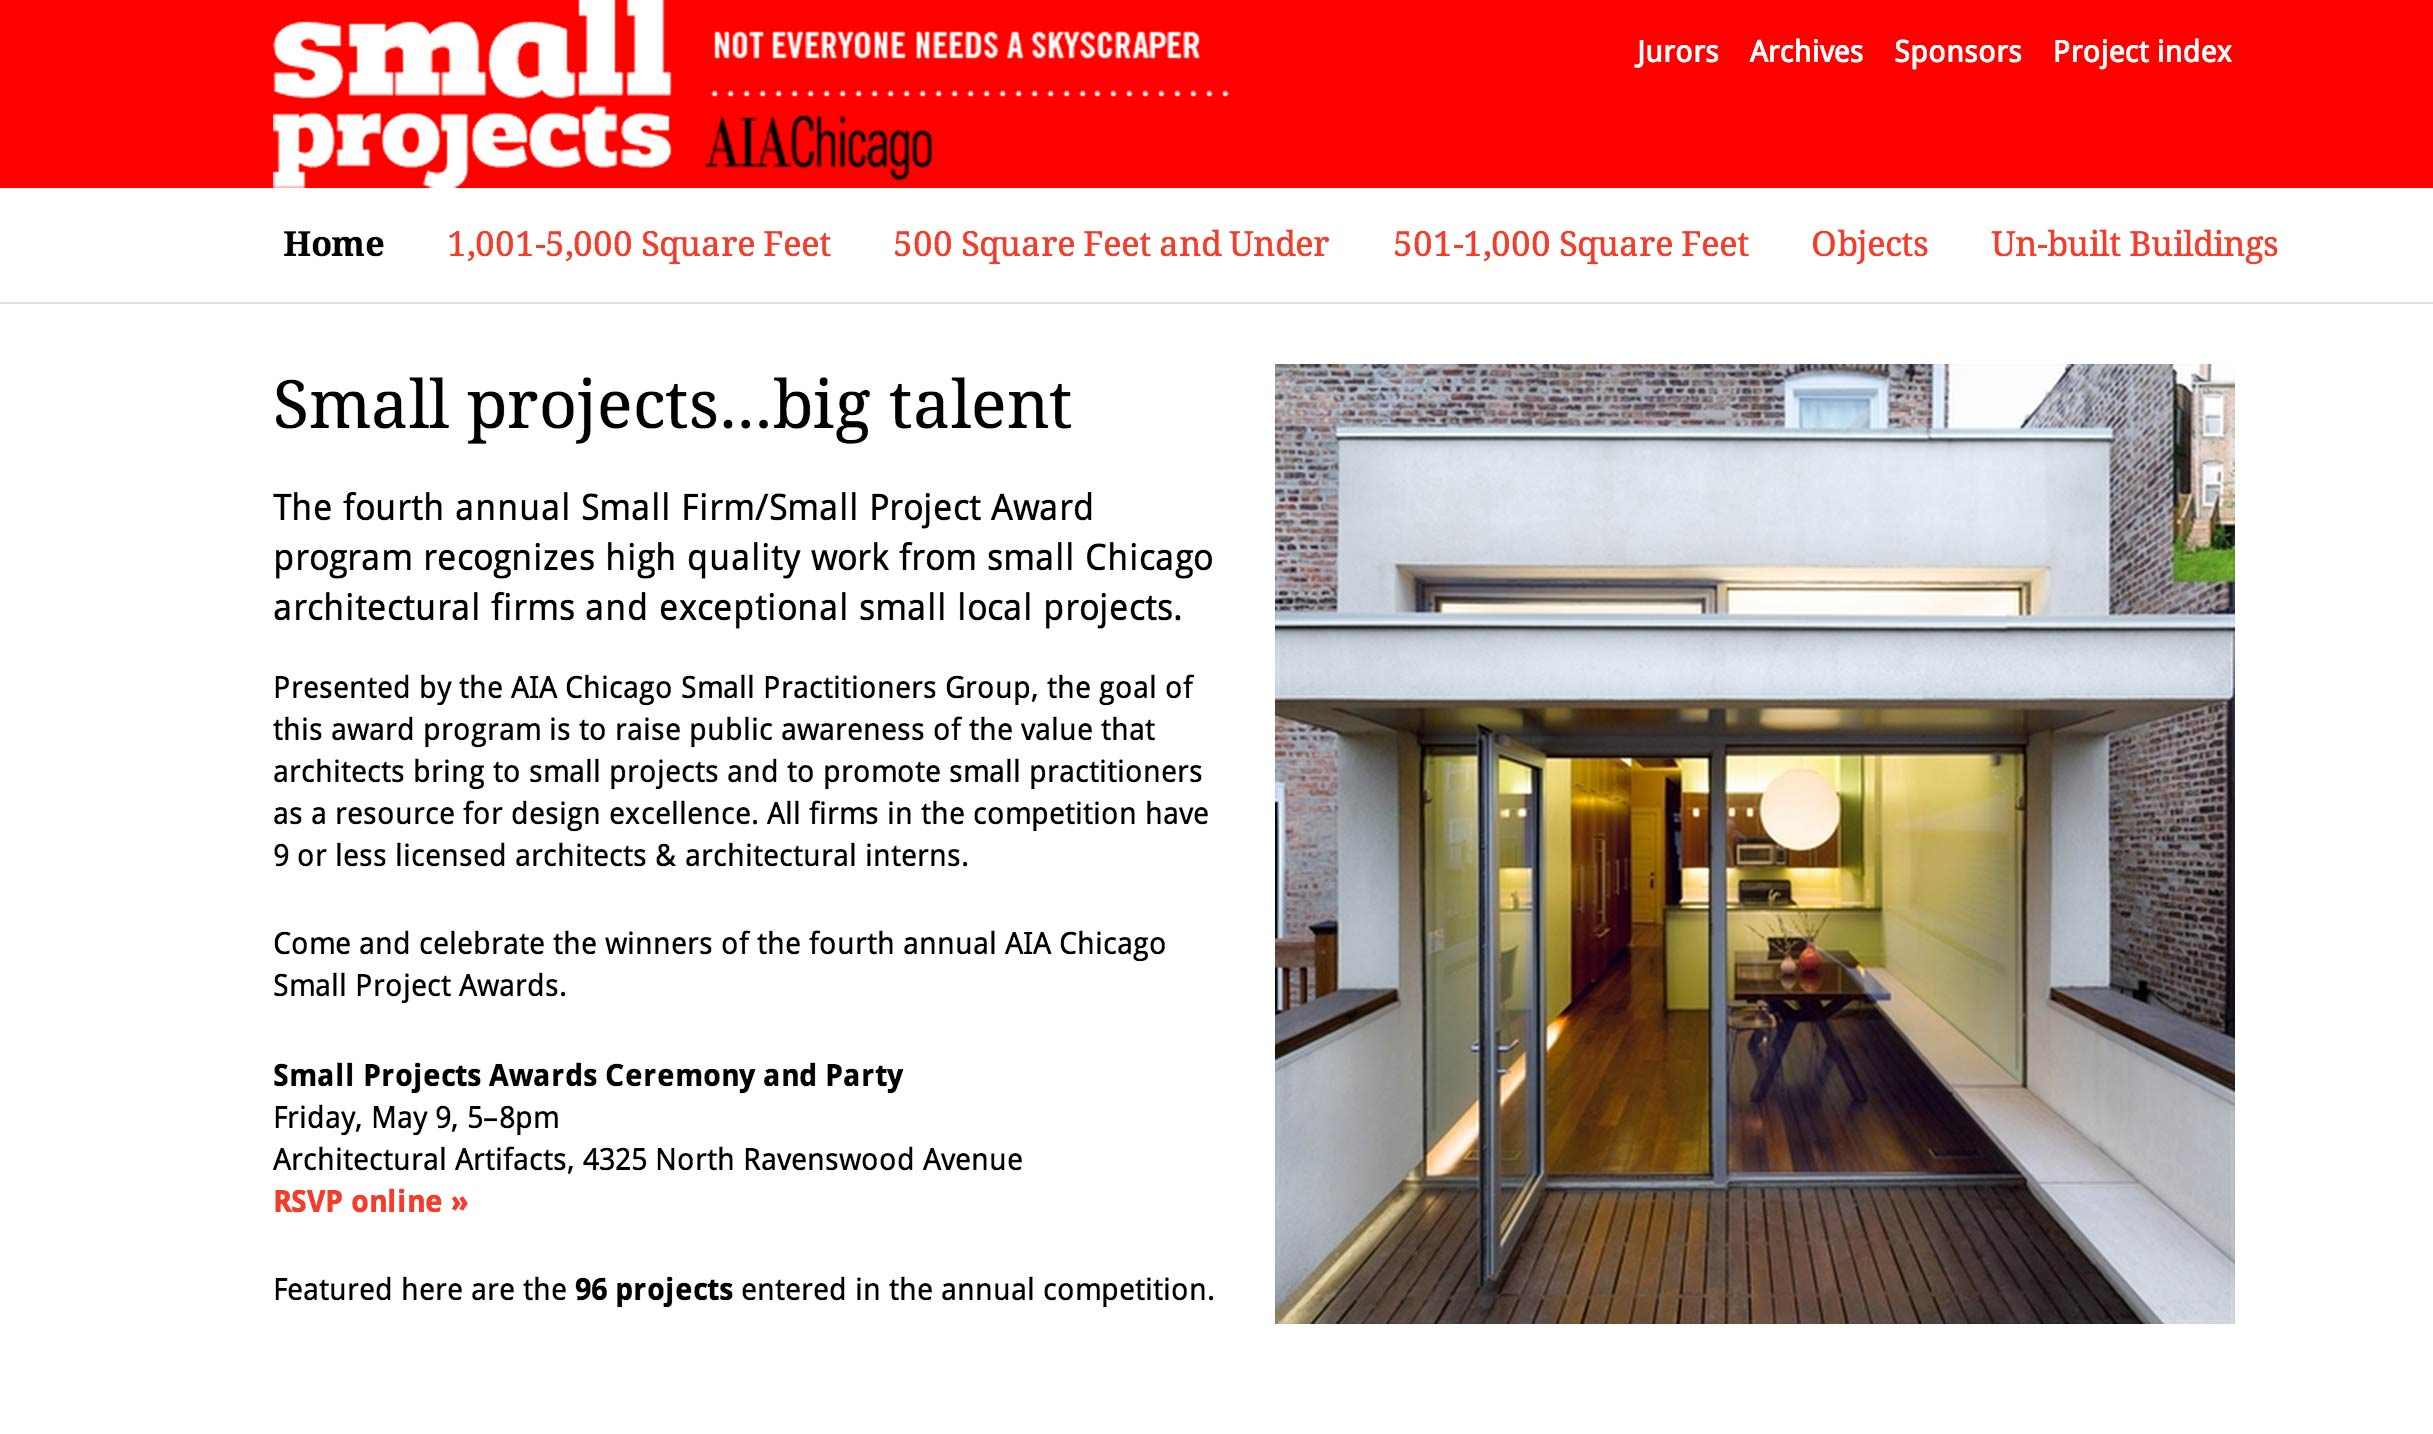 Invitation for the AIA Small Projects Awards party on May 9th in Chicago.  Link here